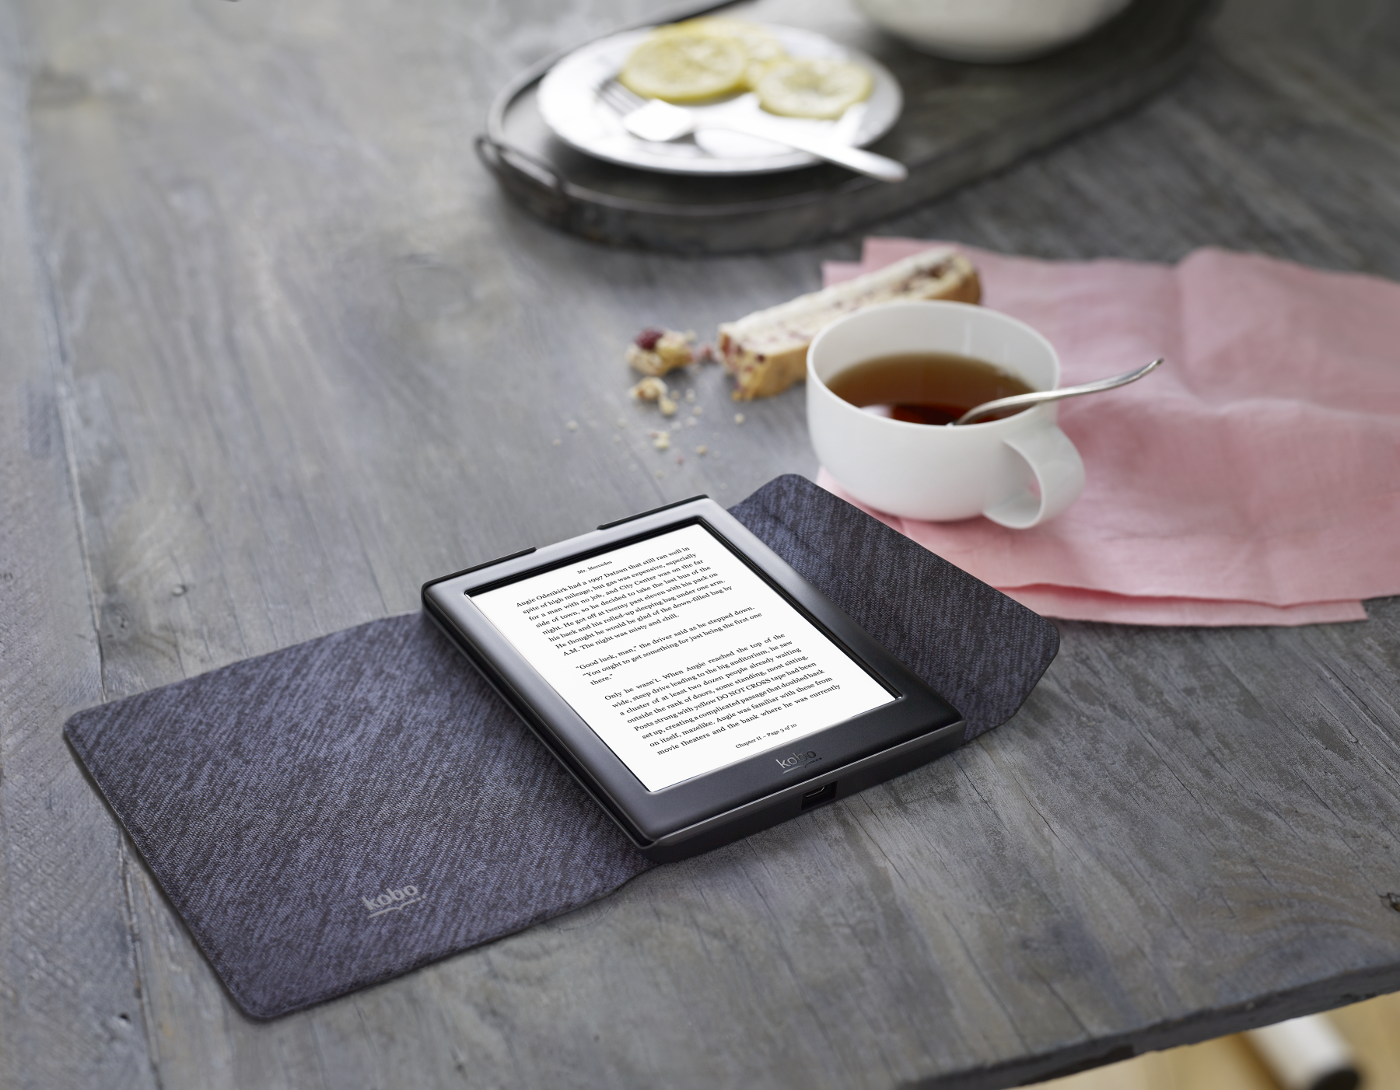 how to turn on kobo glo